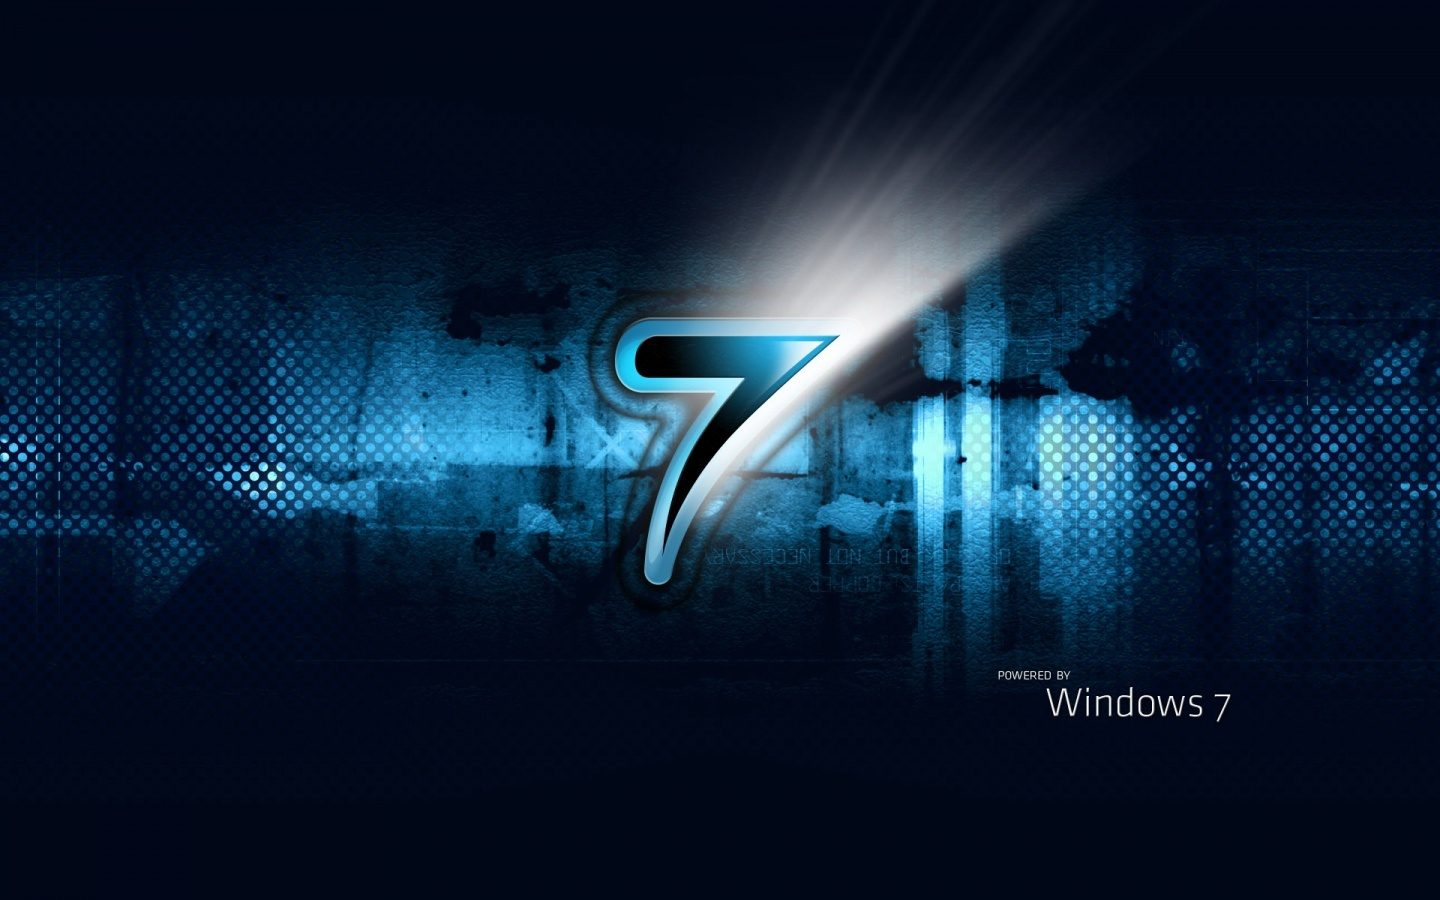 Free Download Hd Wallpapers For Windows 7 Live Wallpaper For